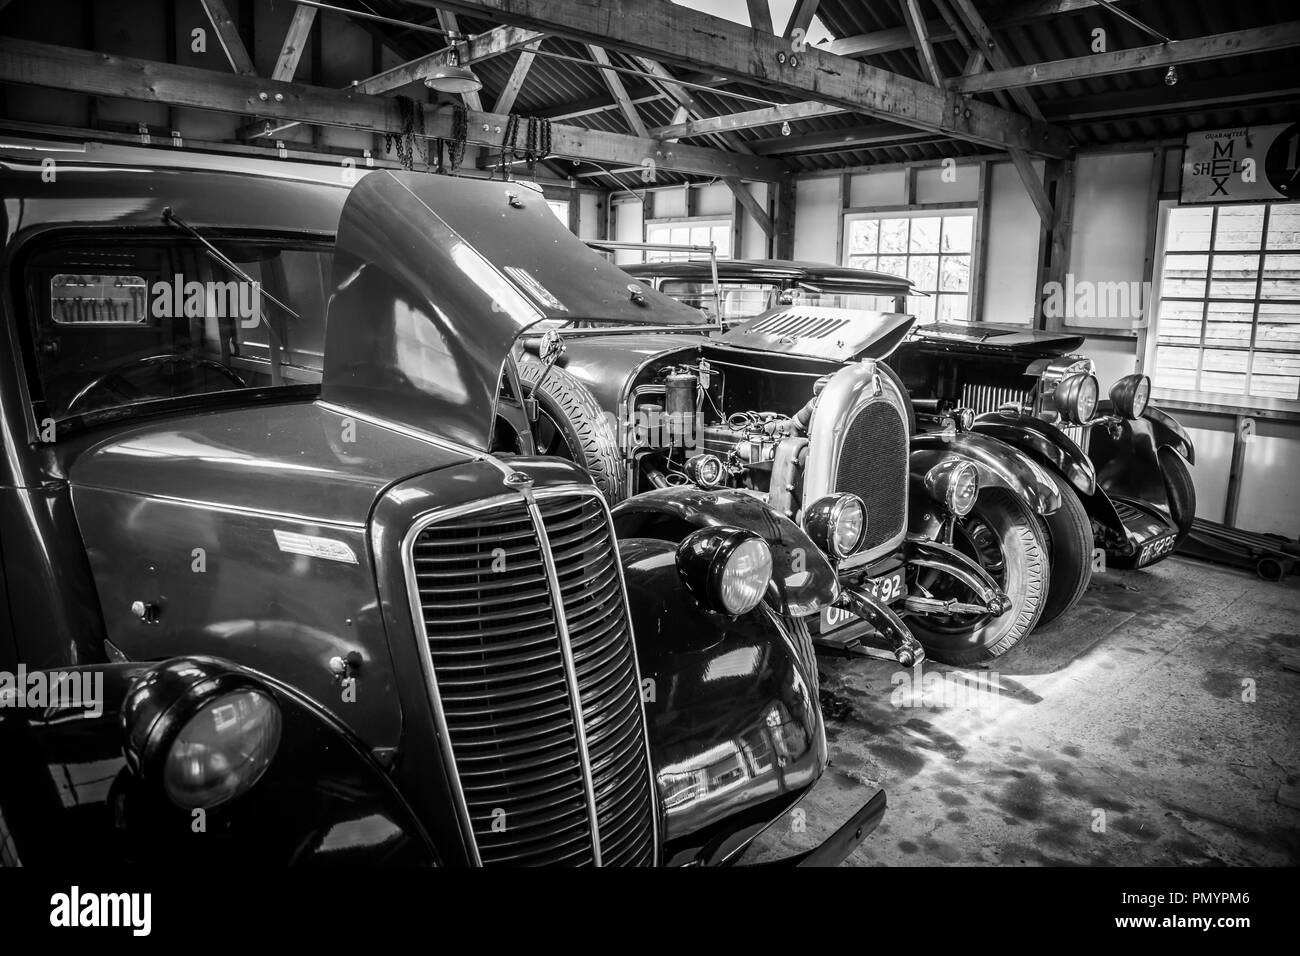 Detailed, arty, black and white, landscape close up of shiny, polished vintage classic cars parked, side by side, in an open garage space. - Stock Image